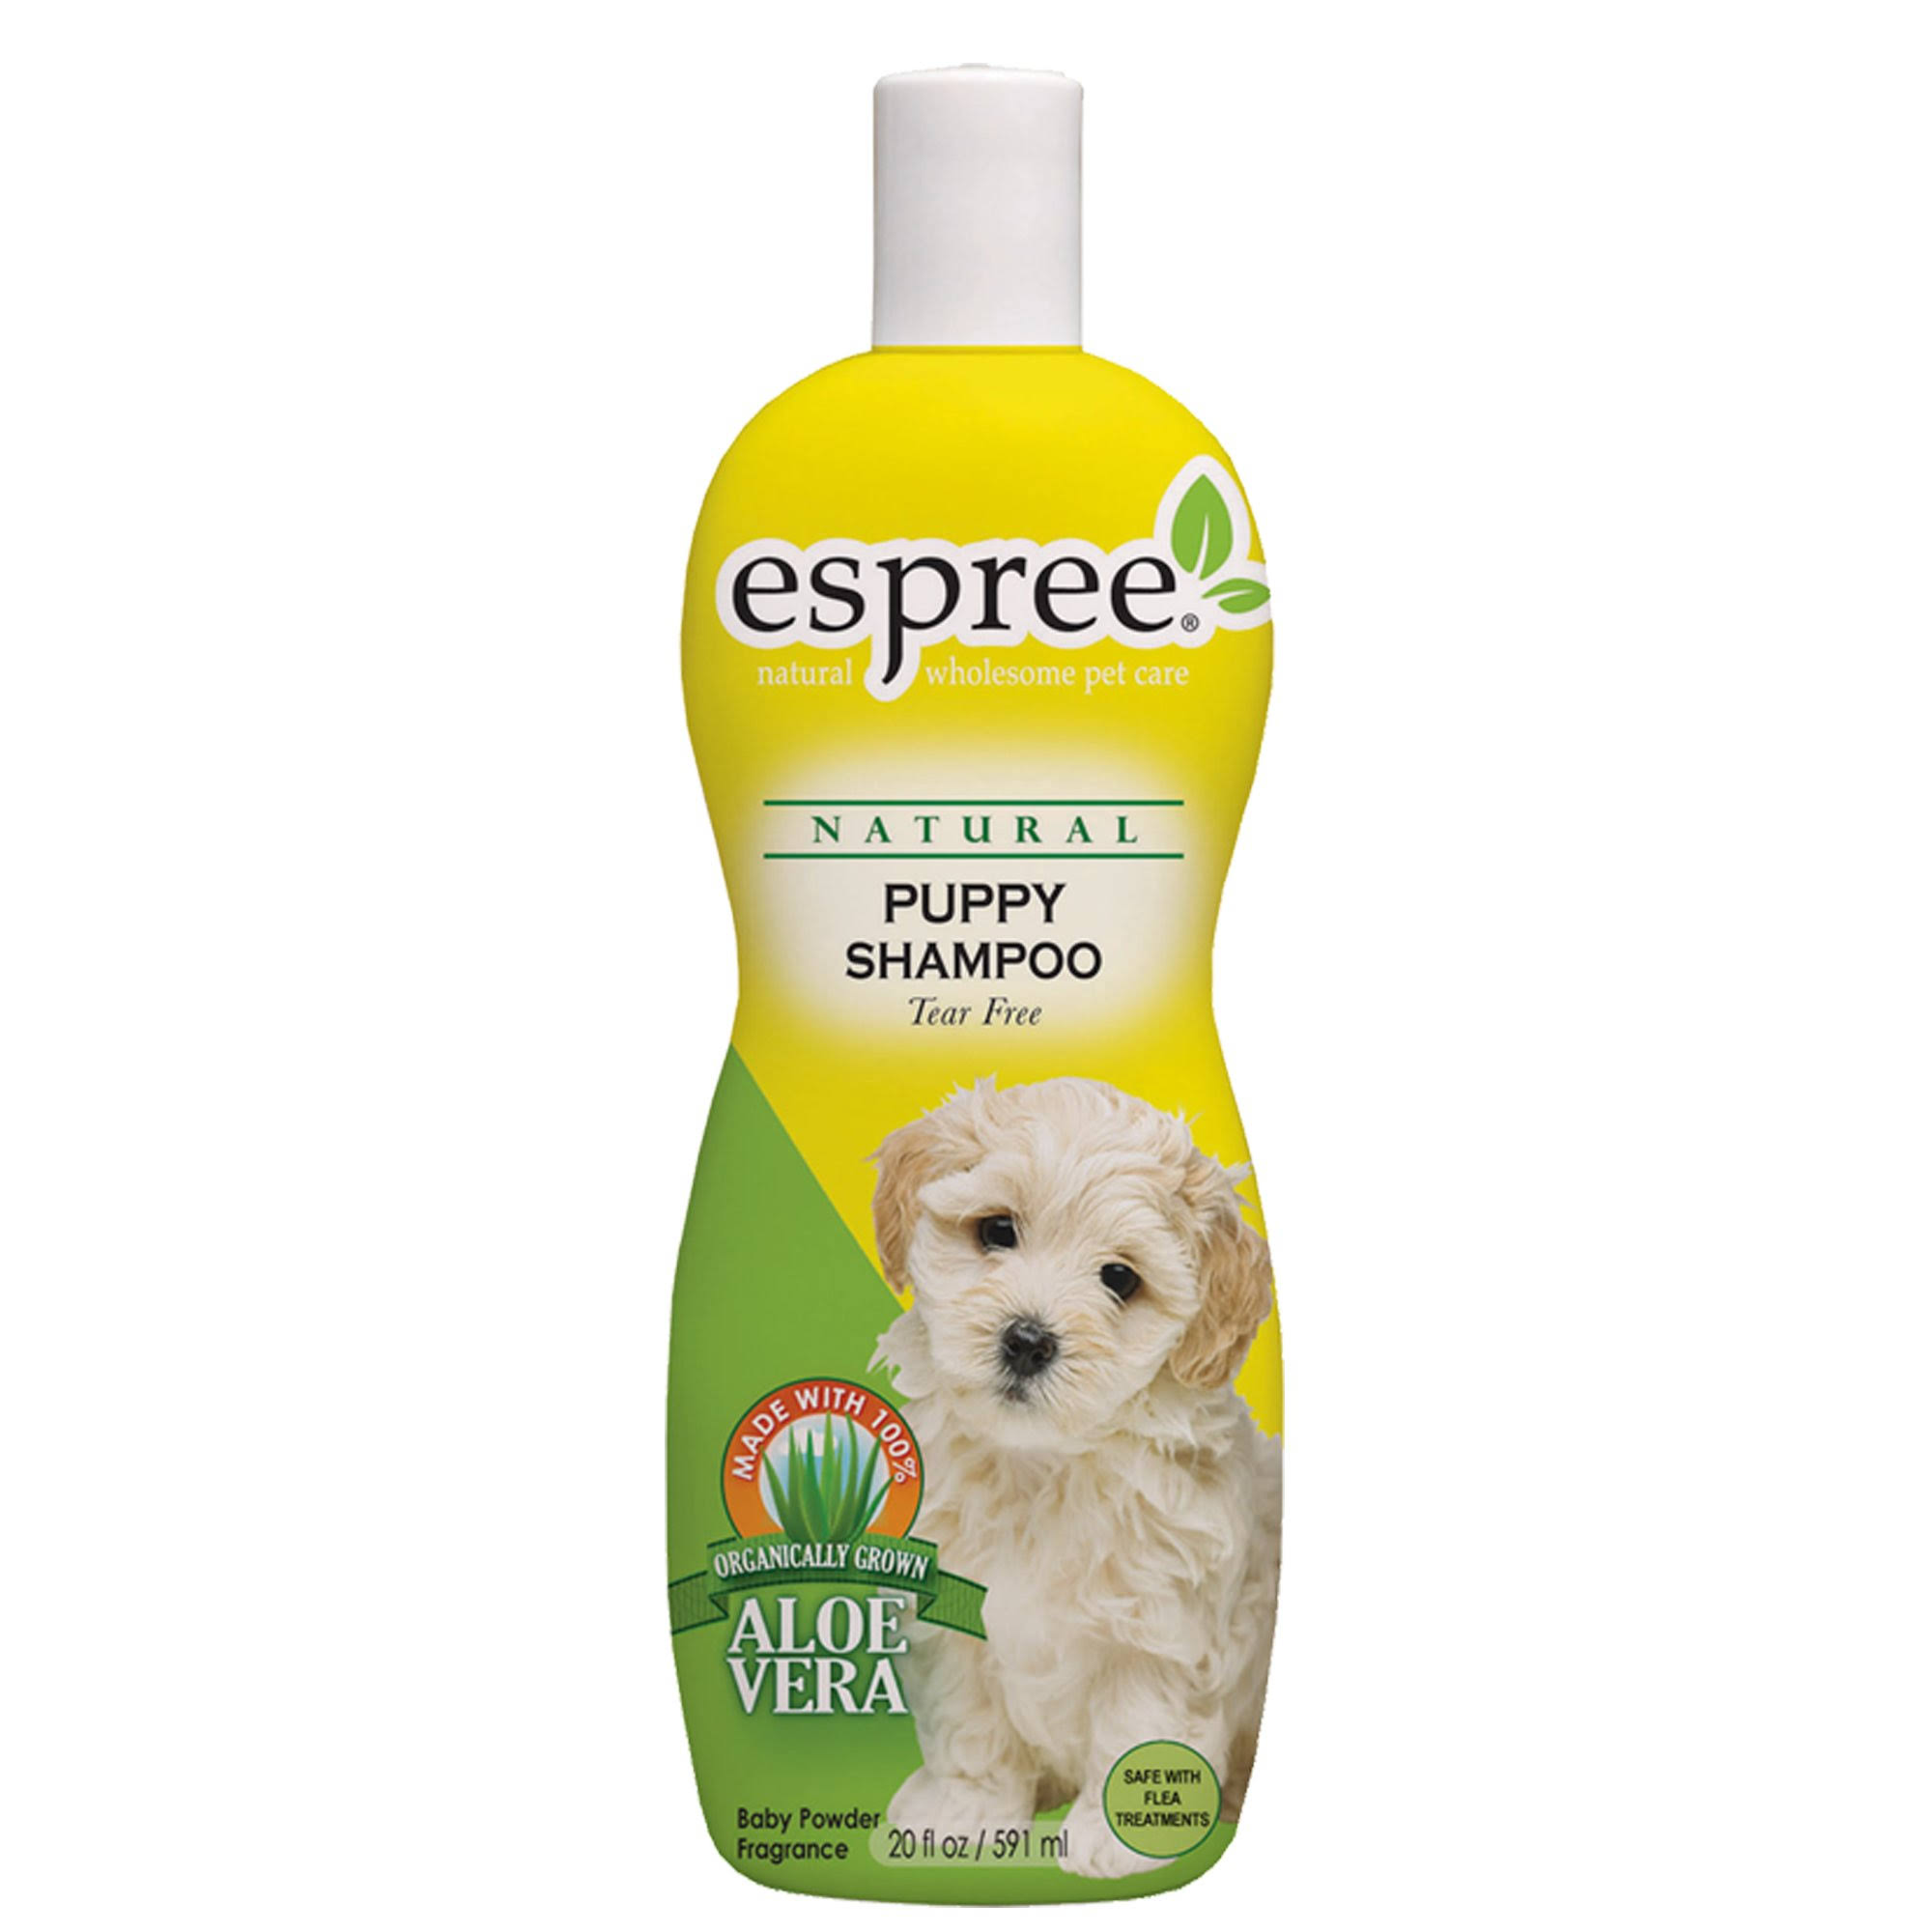 Espree Natural Puppy Shampoo - 20 oz